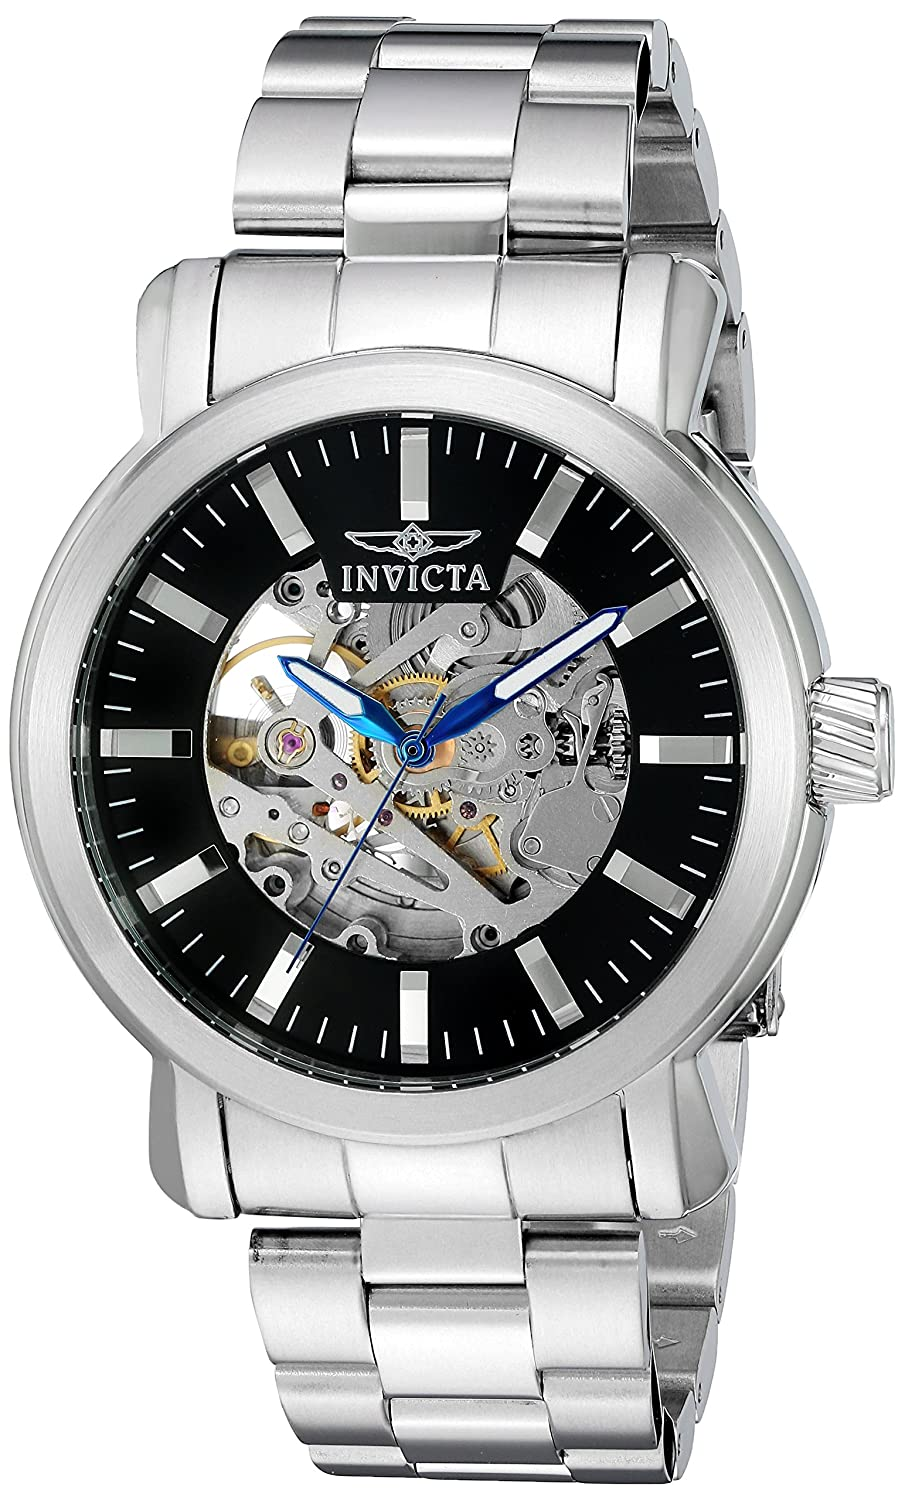 Amazon.com: Invicta Mens Vintage Automatic Stainless Steel Casual Watch, Color:Silver-Toned (Model: 22574): Invicta: Watches